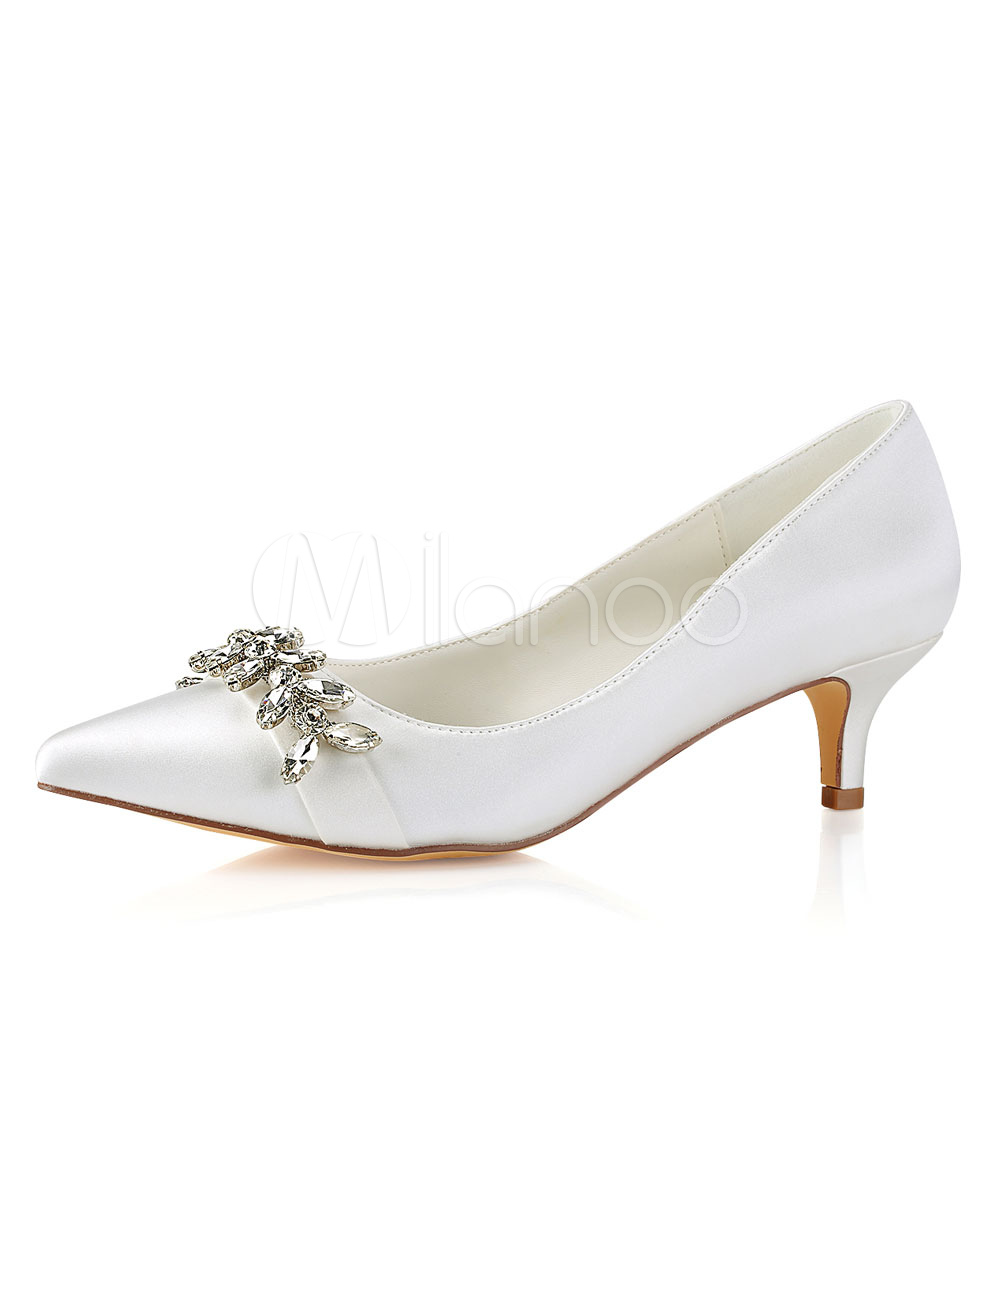 Ivory Wedding Shoes Pointed Toe Rhinestones Kitten Heel Bridal Shoes Mother Shoes